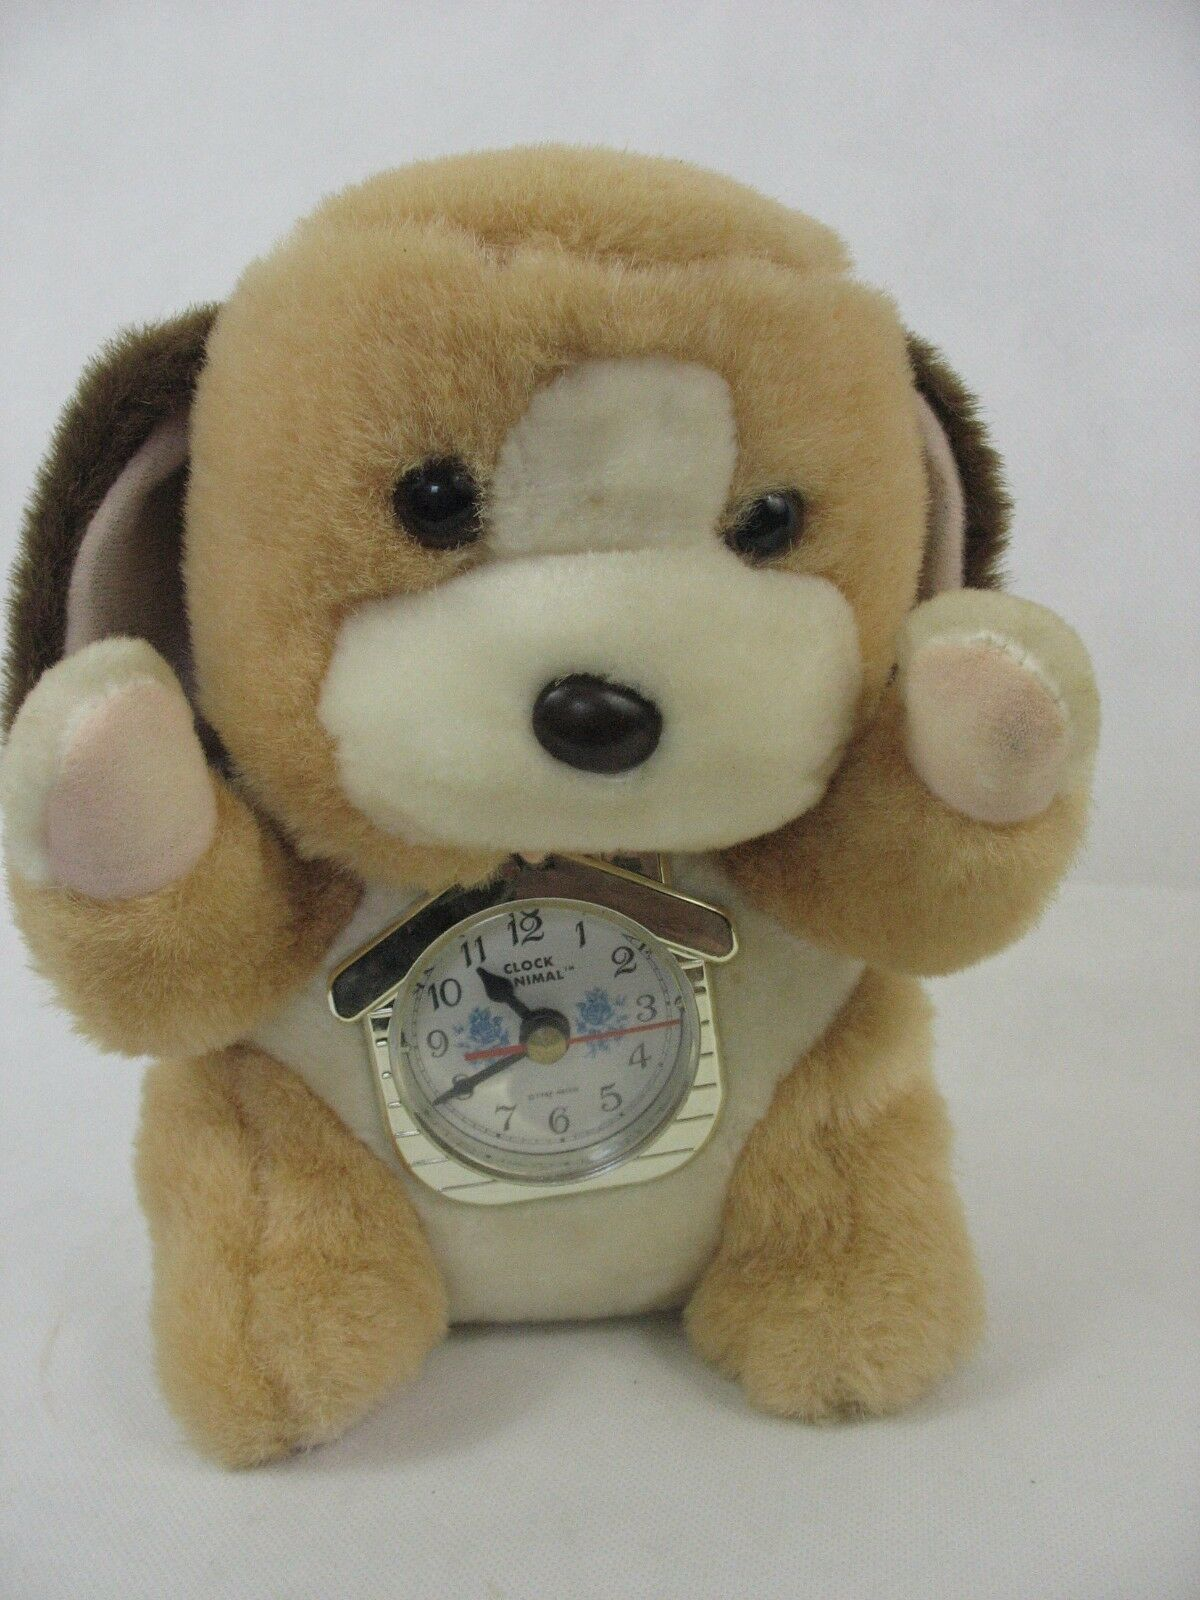 Primary image for Vintage Clock Animal Plush Metro 1986 1987 Puppy Dog